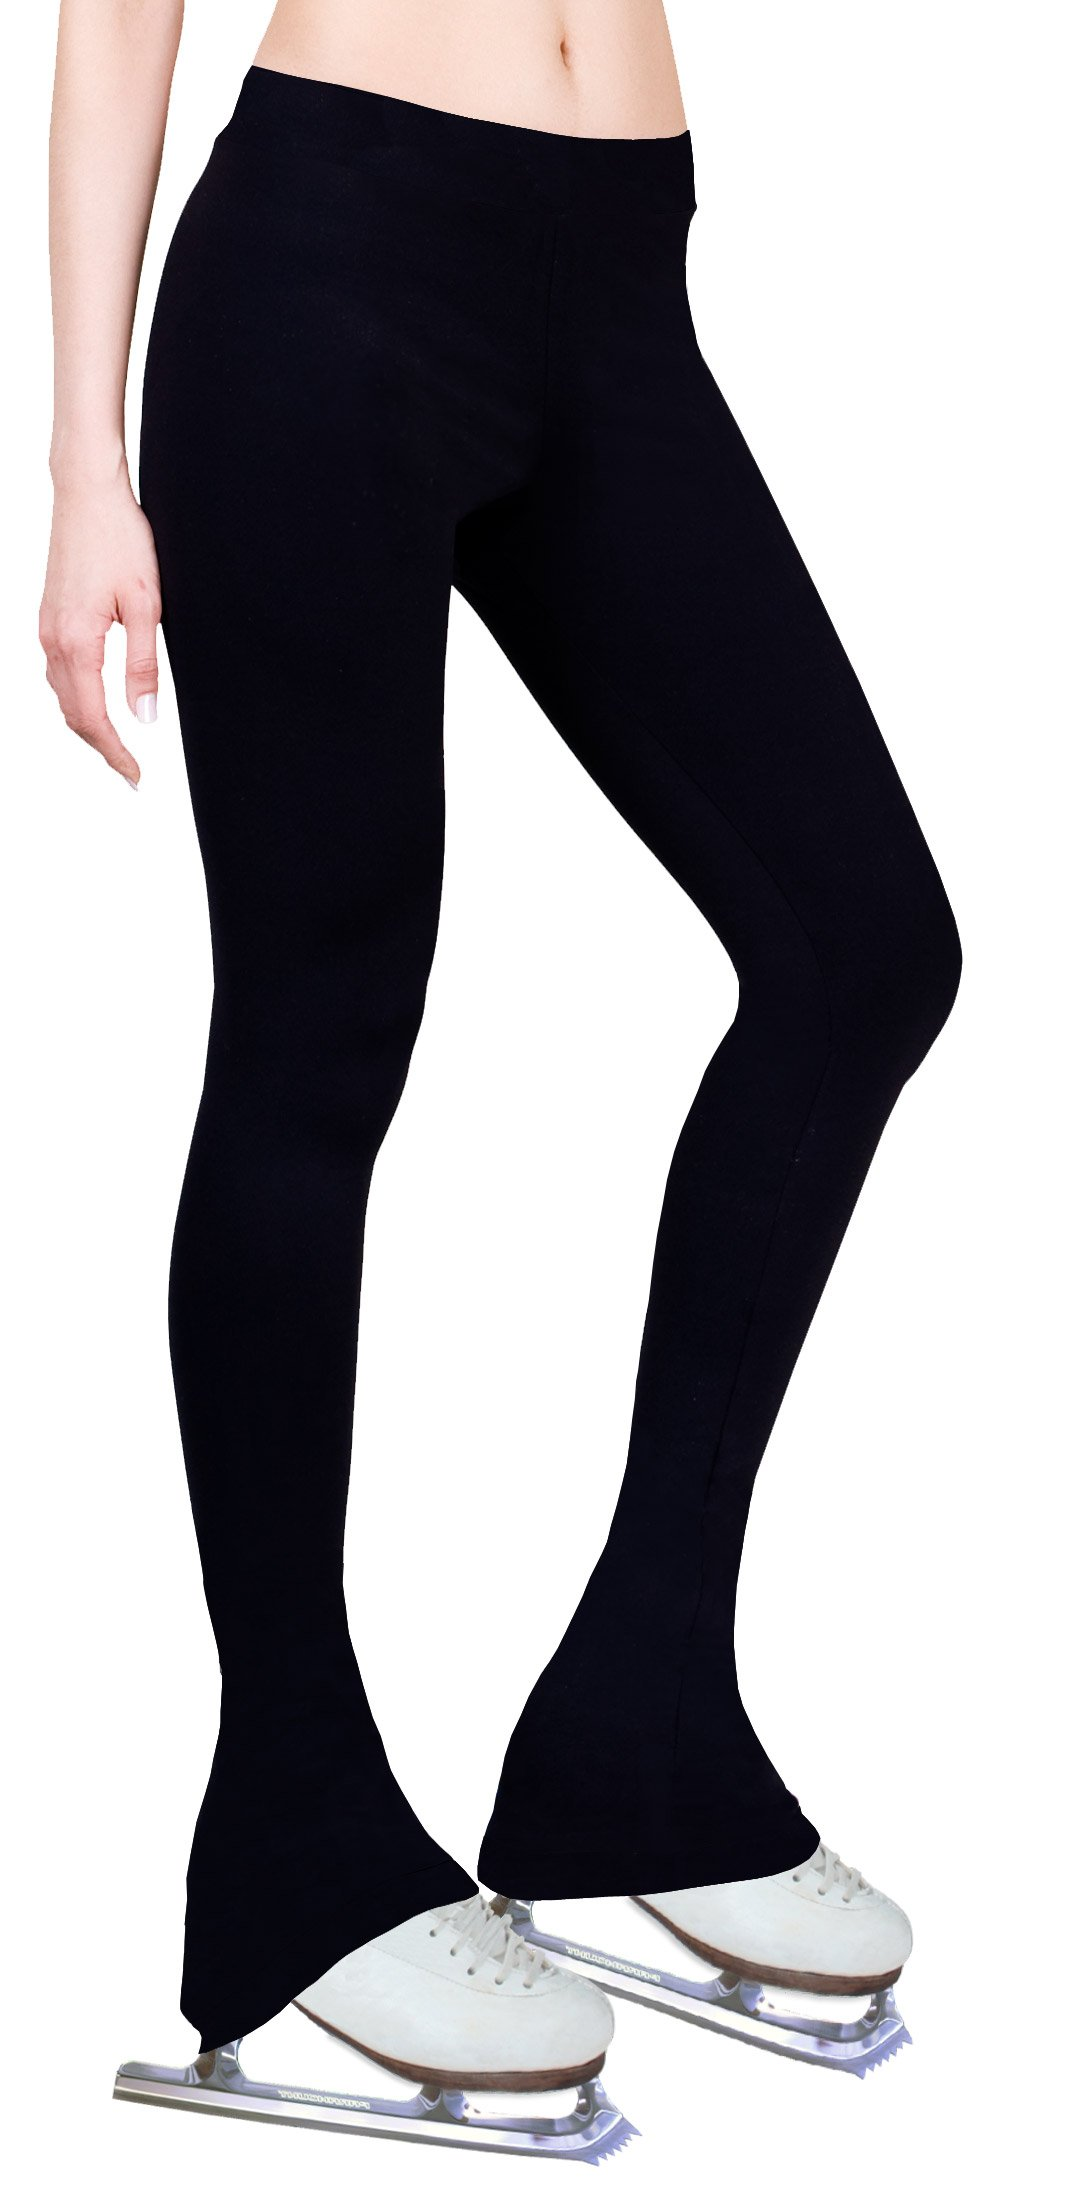 ny2 Sportswear Figure Skating Practice Pants - Black (Adult Small) by ny2 Sportswear